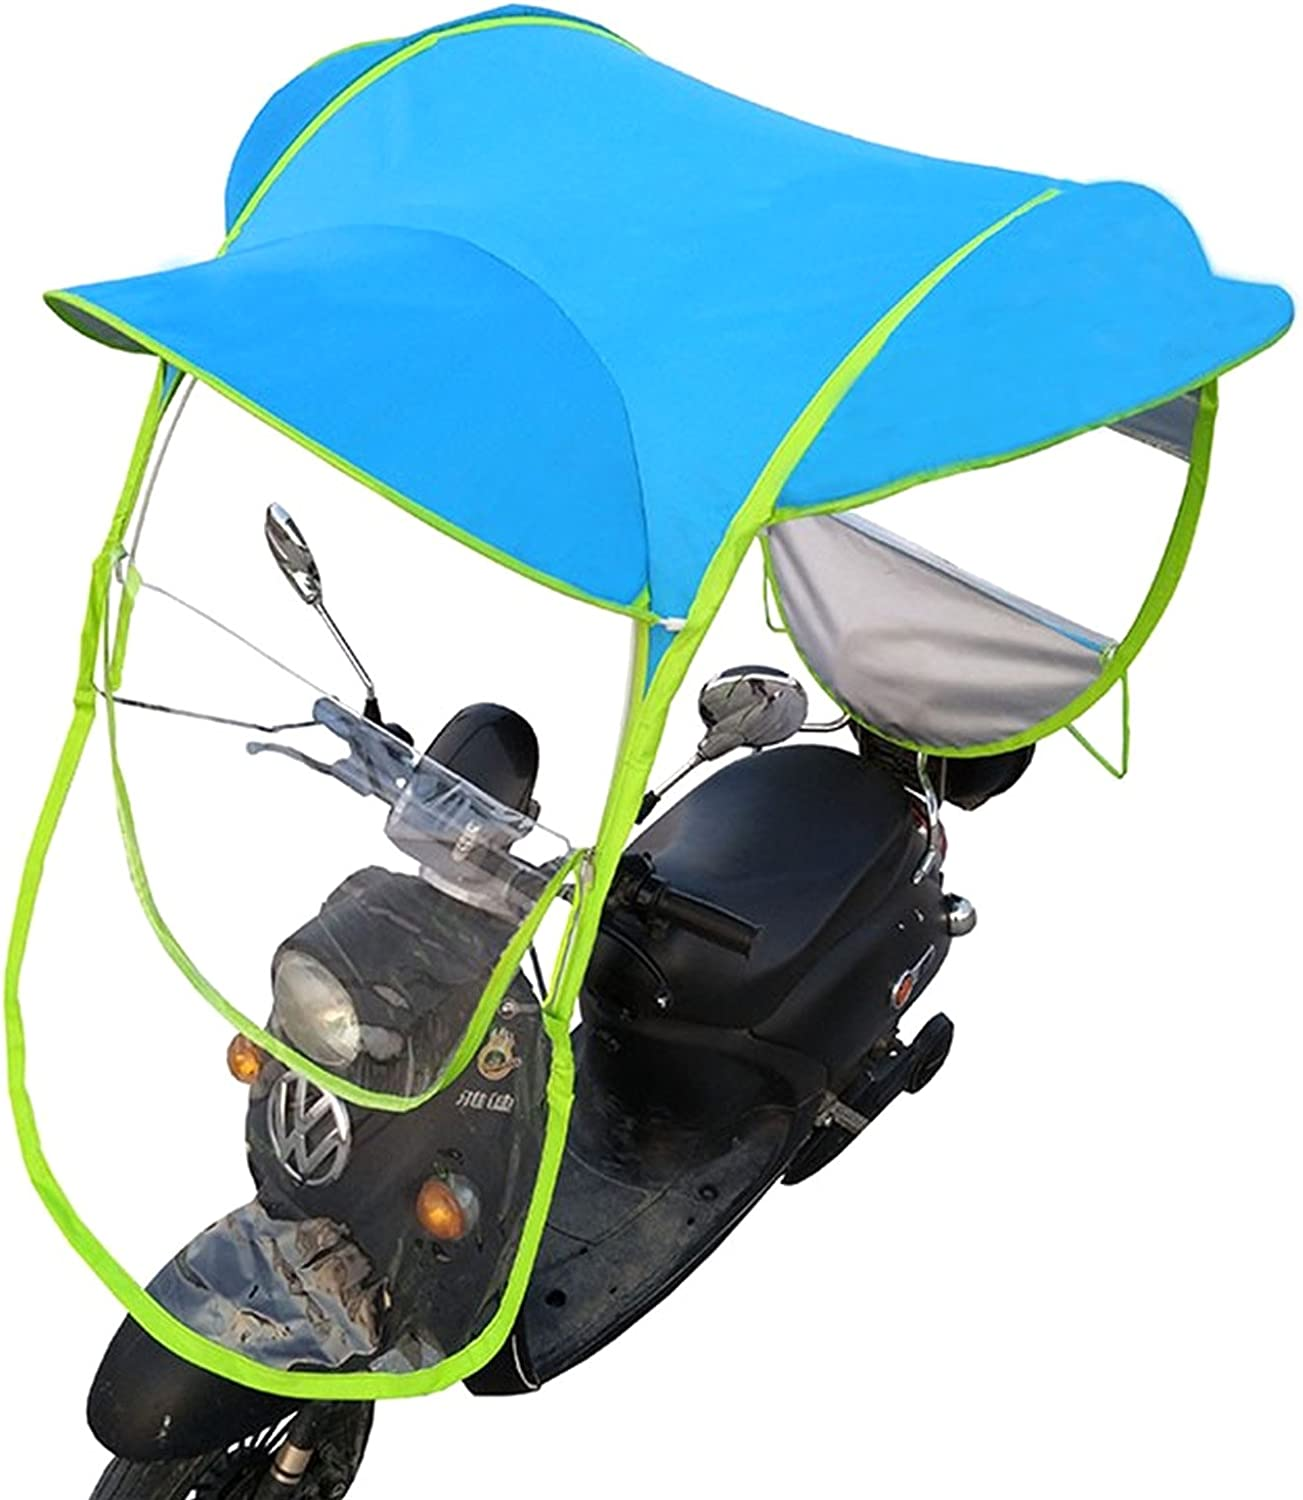 Universal Car Motor Scooter Umbrella Mobility Sun Shade Rain Cover  Waterproof Blue Accessories Vehicle Covers